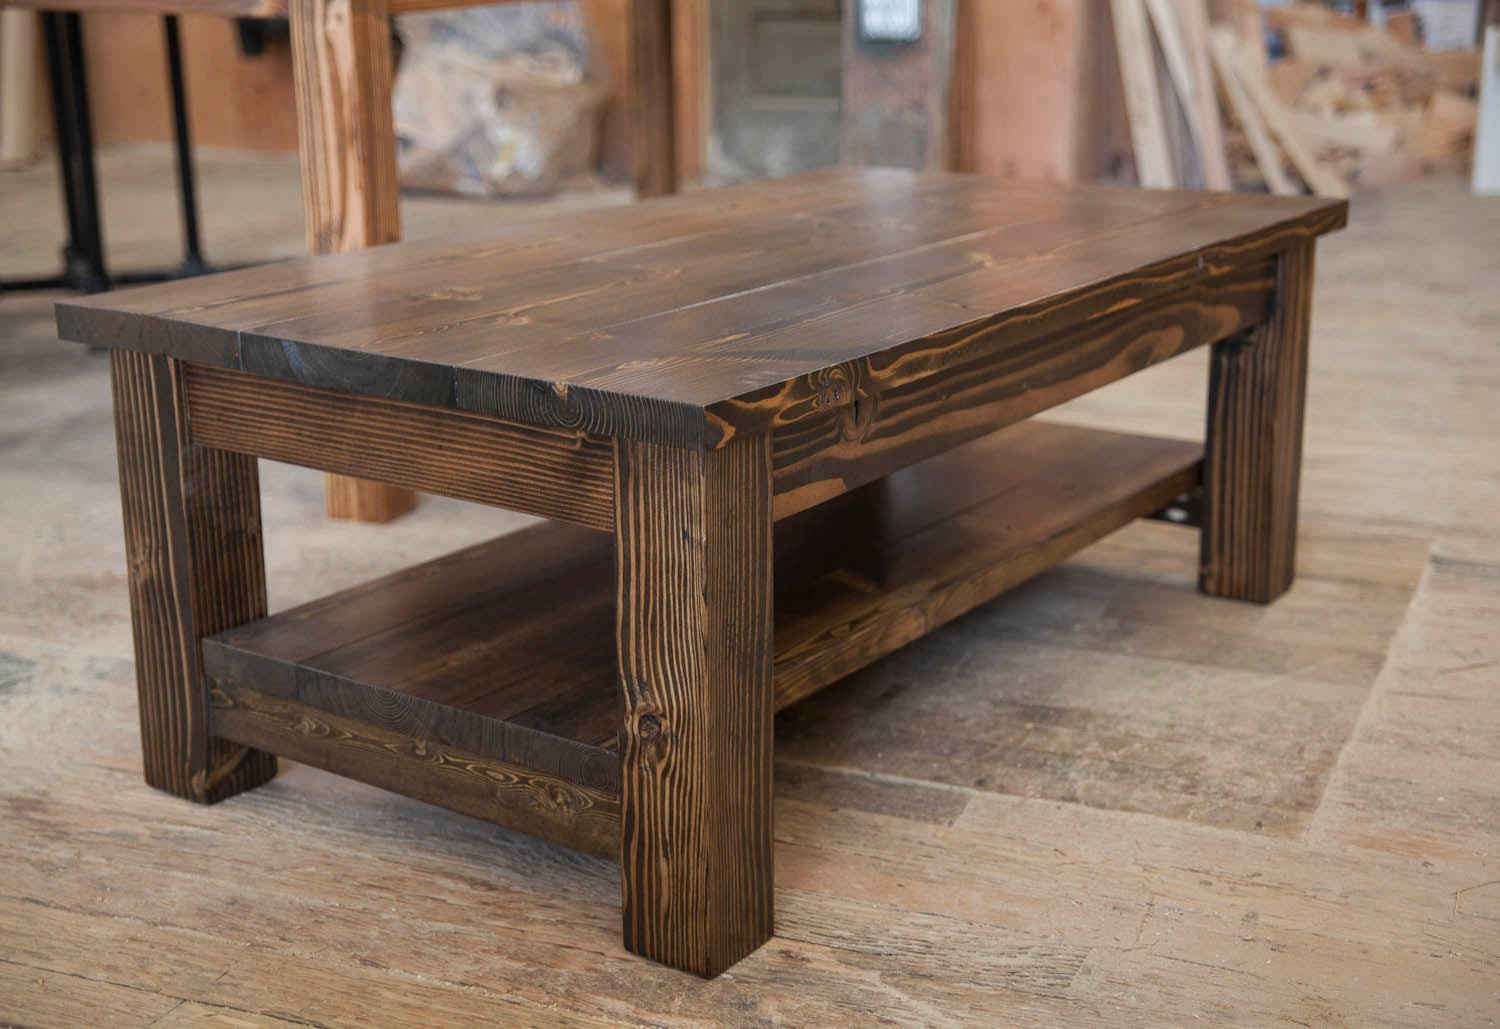 Best ideas about Farmhouse Coffee Table . Save or Pin Farmhouse Coffee Table Rustic Coffee Table Solid Wood Now.